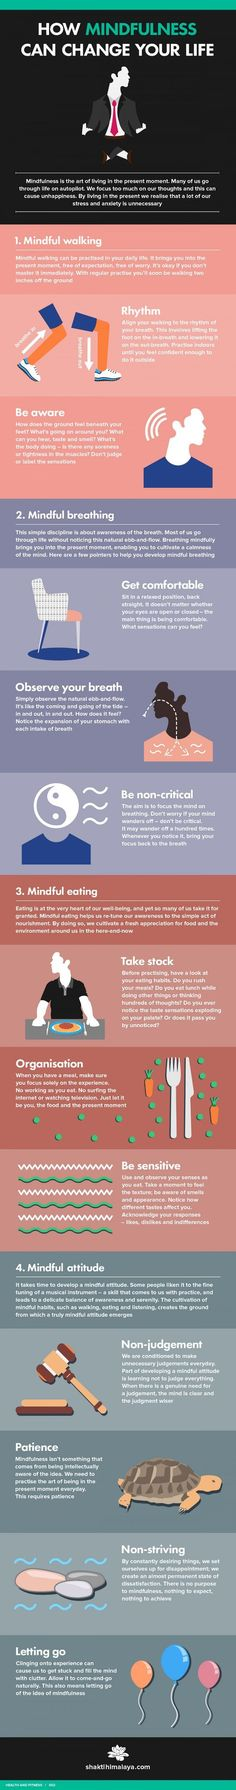 16 Ways Mindfulness Can Improve Your Life